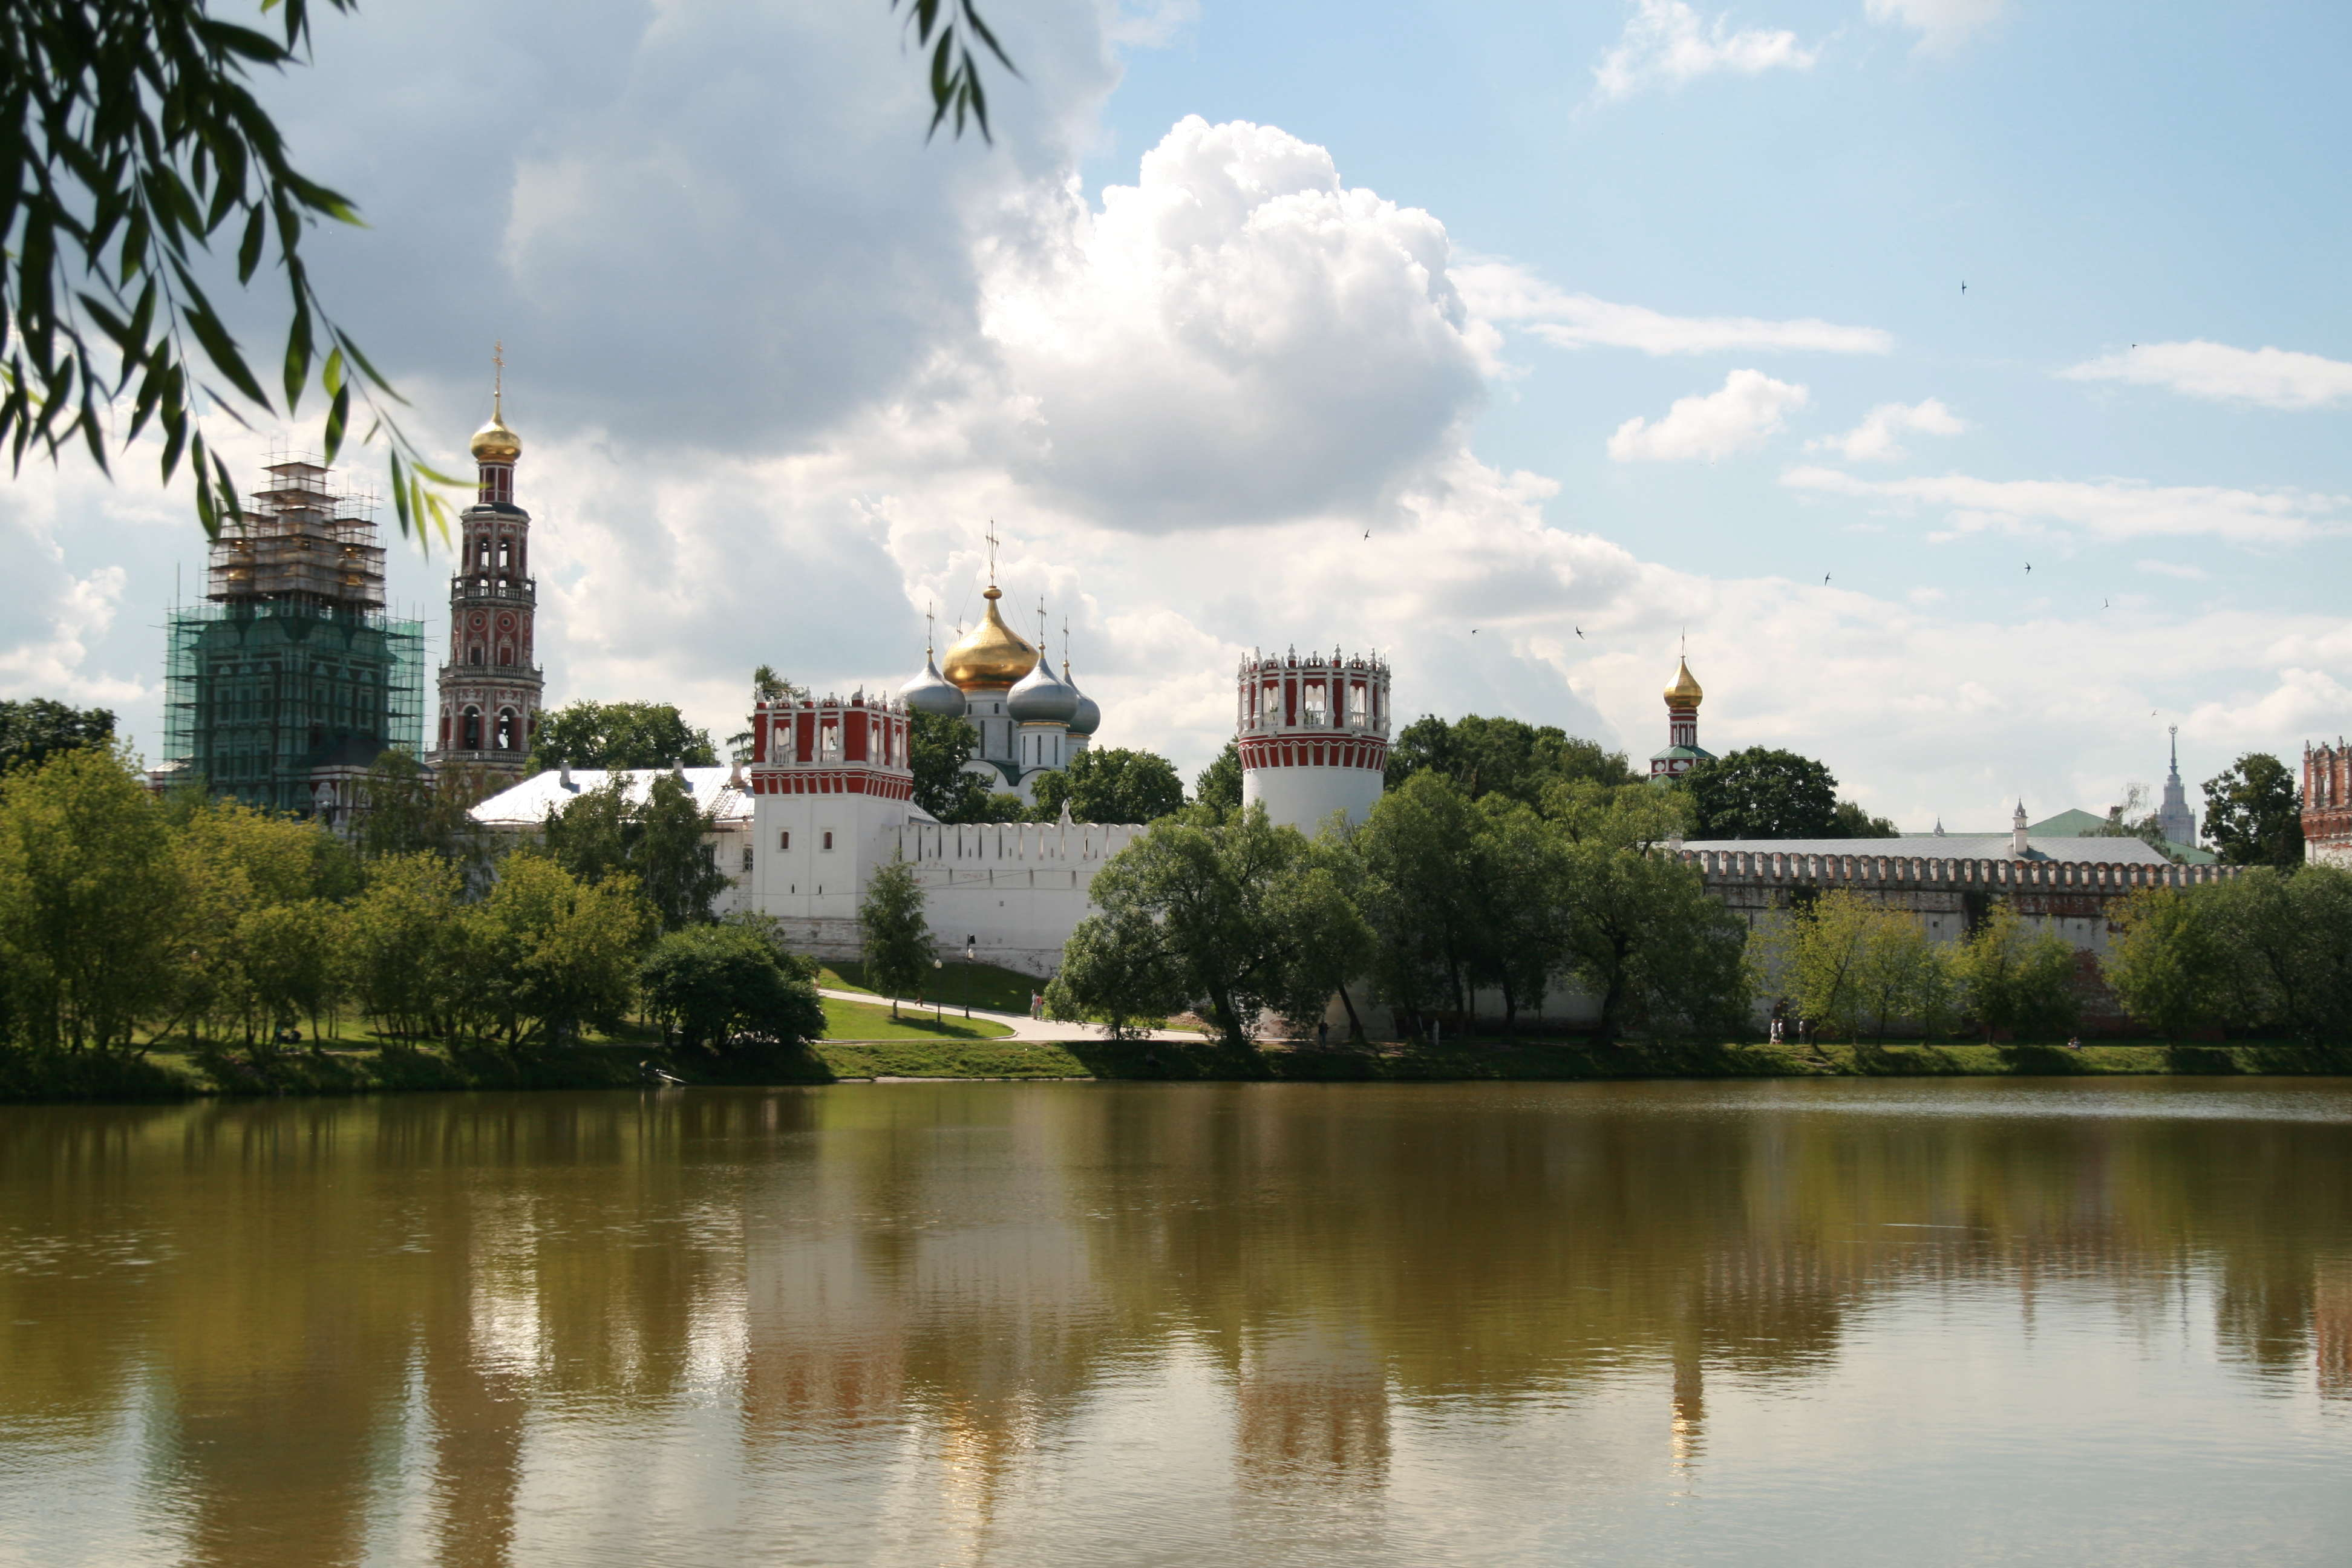 Novodevichy Convent Museum